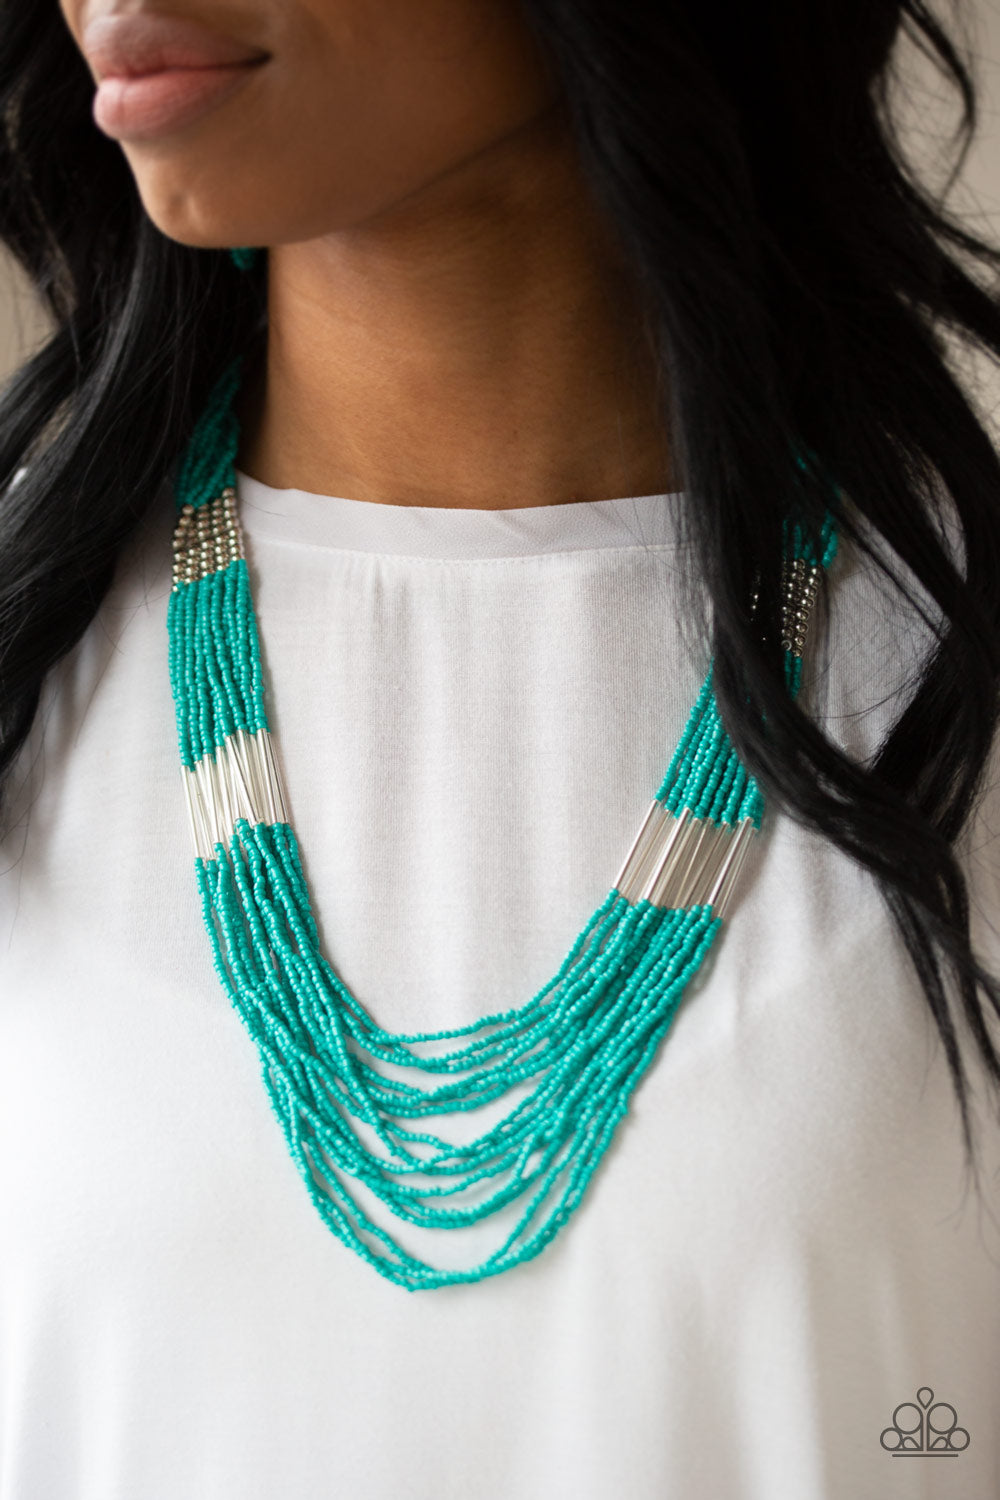 Let It BEAD - Turquoise Seed Bead Necklace